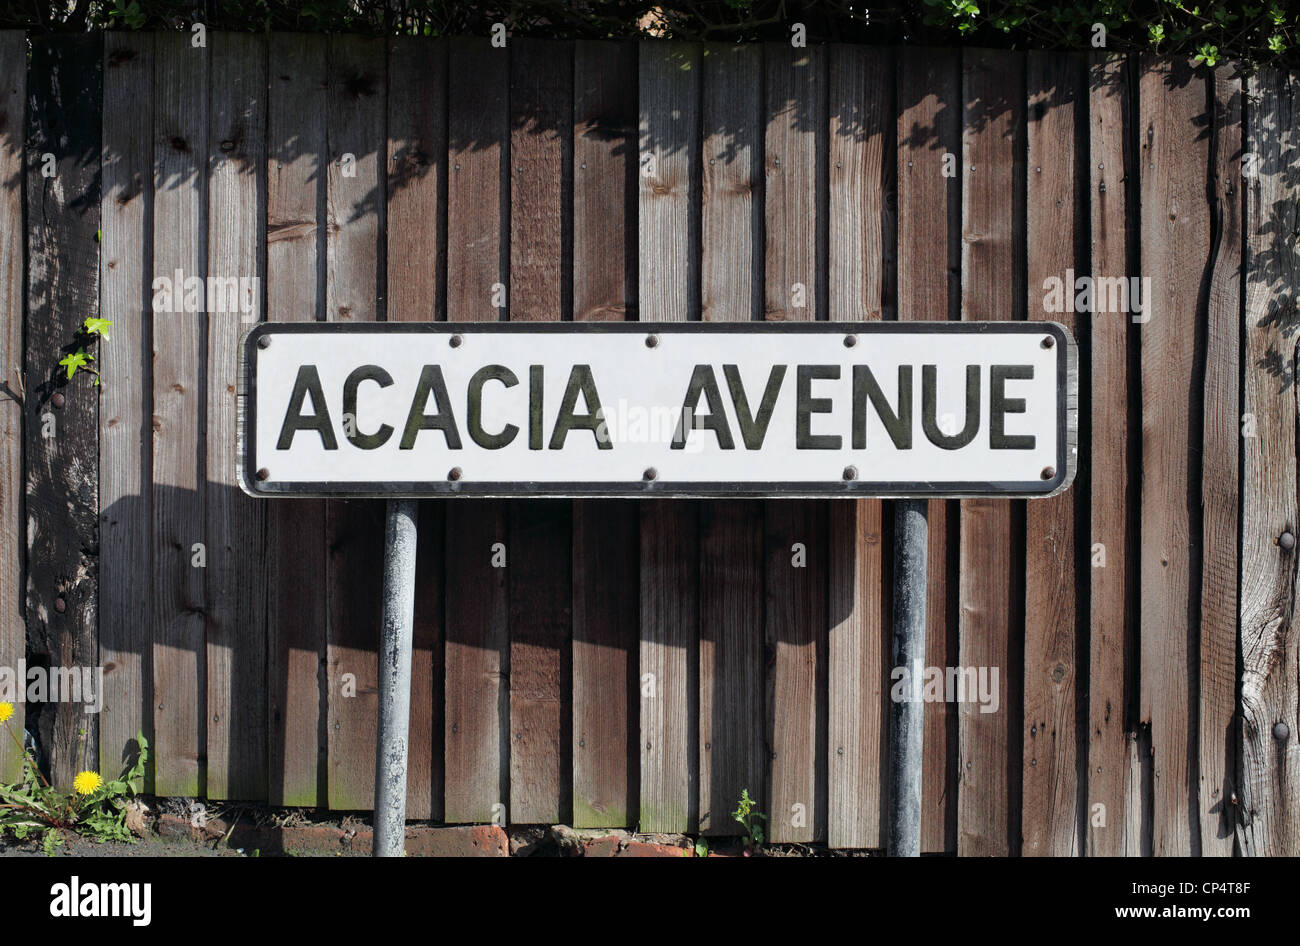 Acacia Avenue road sign, Hove, East Sussex. - Stock Image